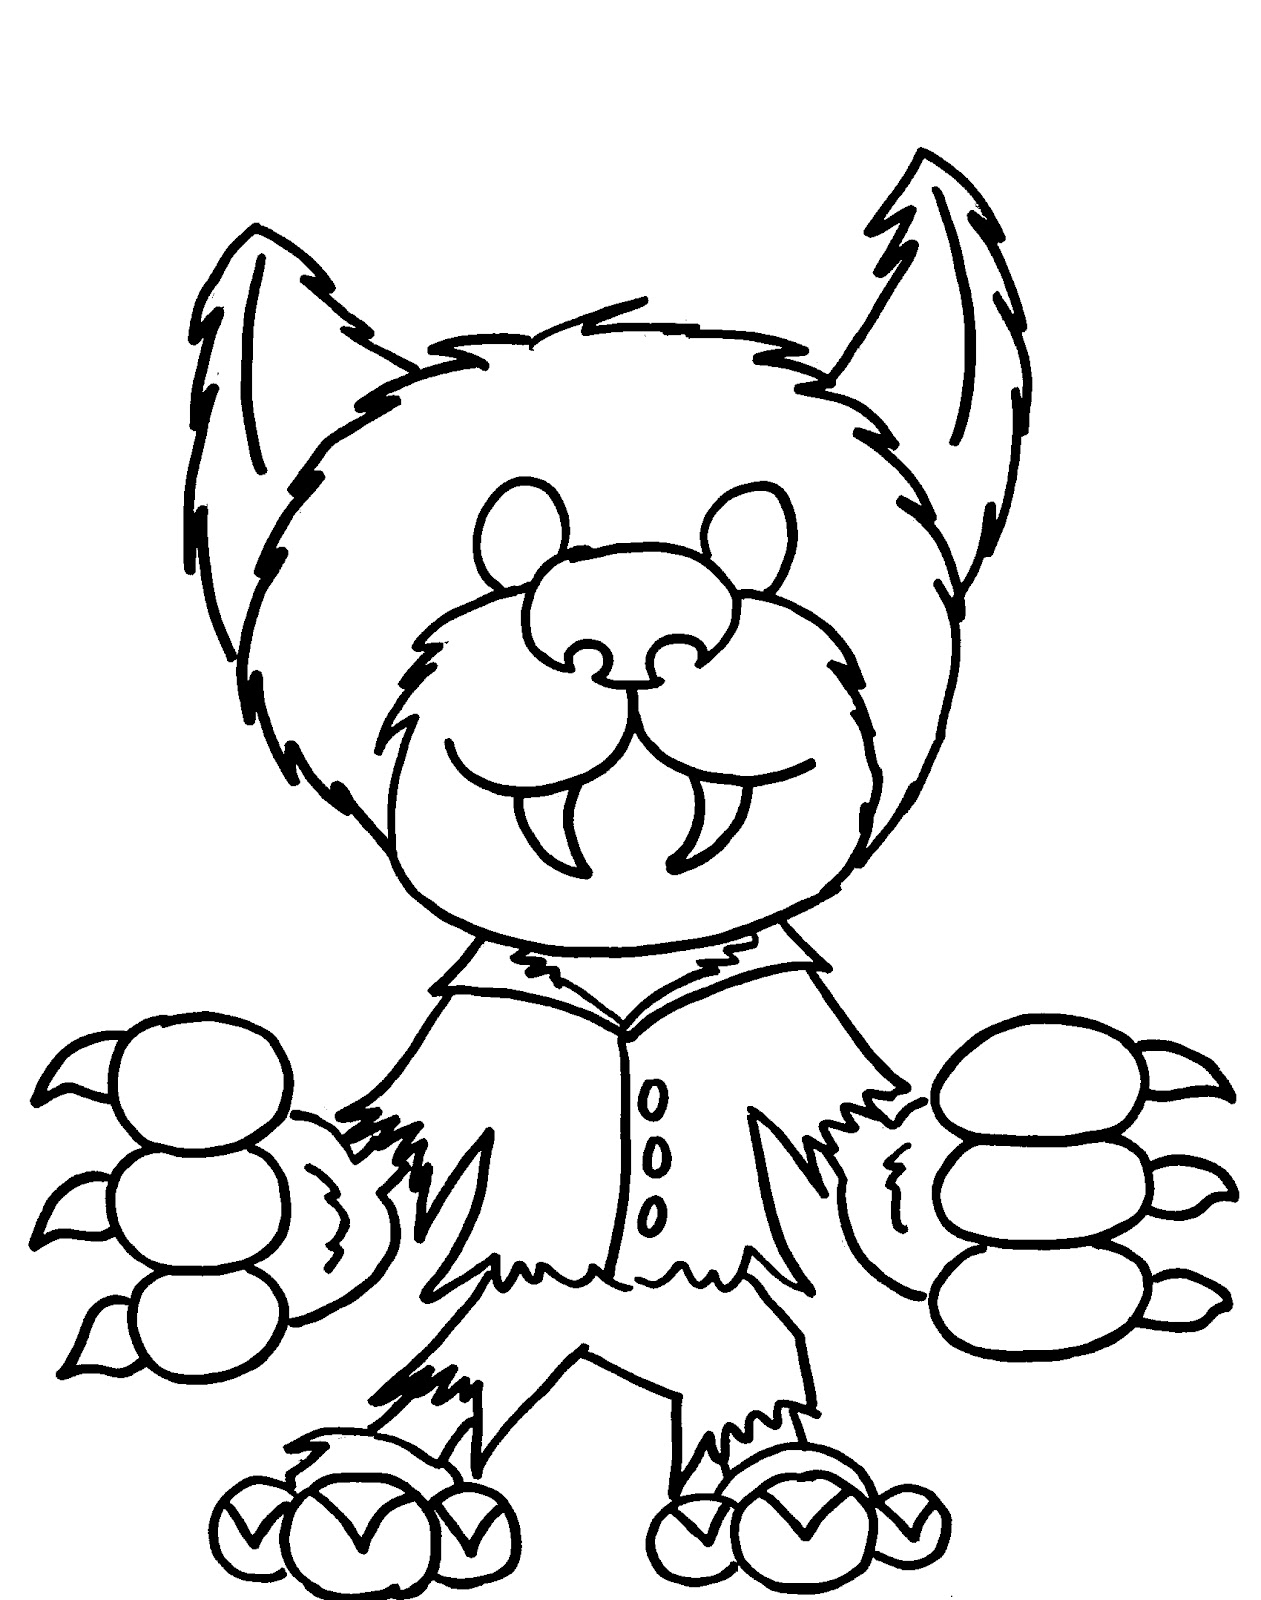 kawaii halloween coloring pages - photo#36